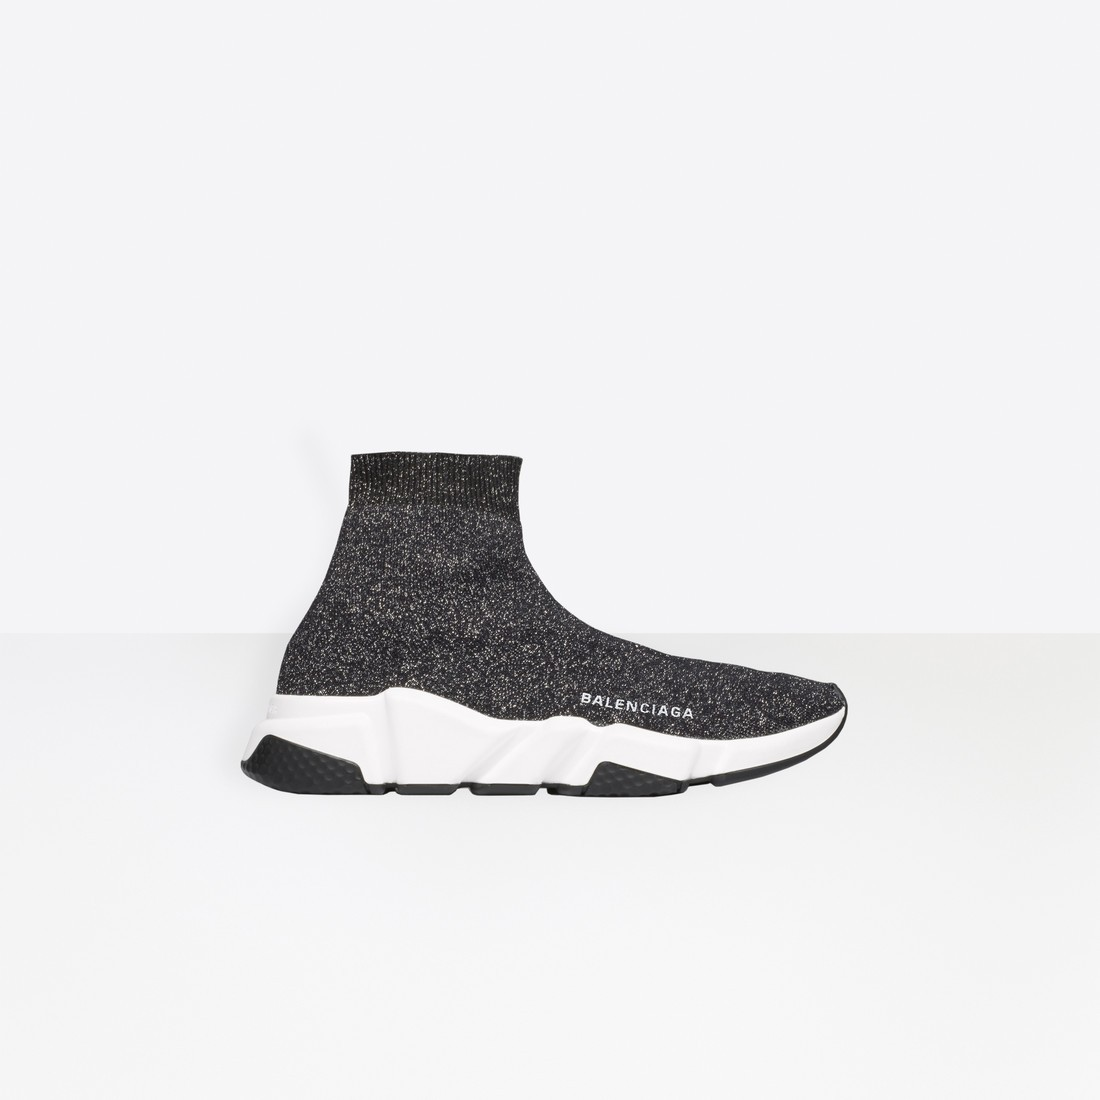 Balenciaga Mujer Speed Trainers with textured sole Negras 530284W06801000